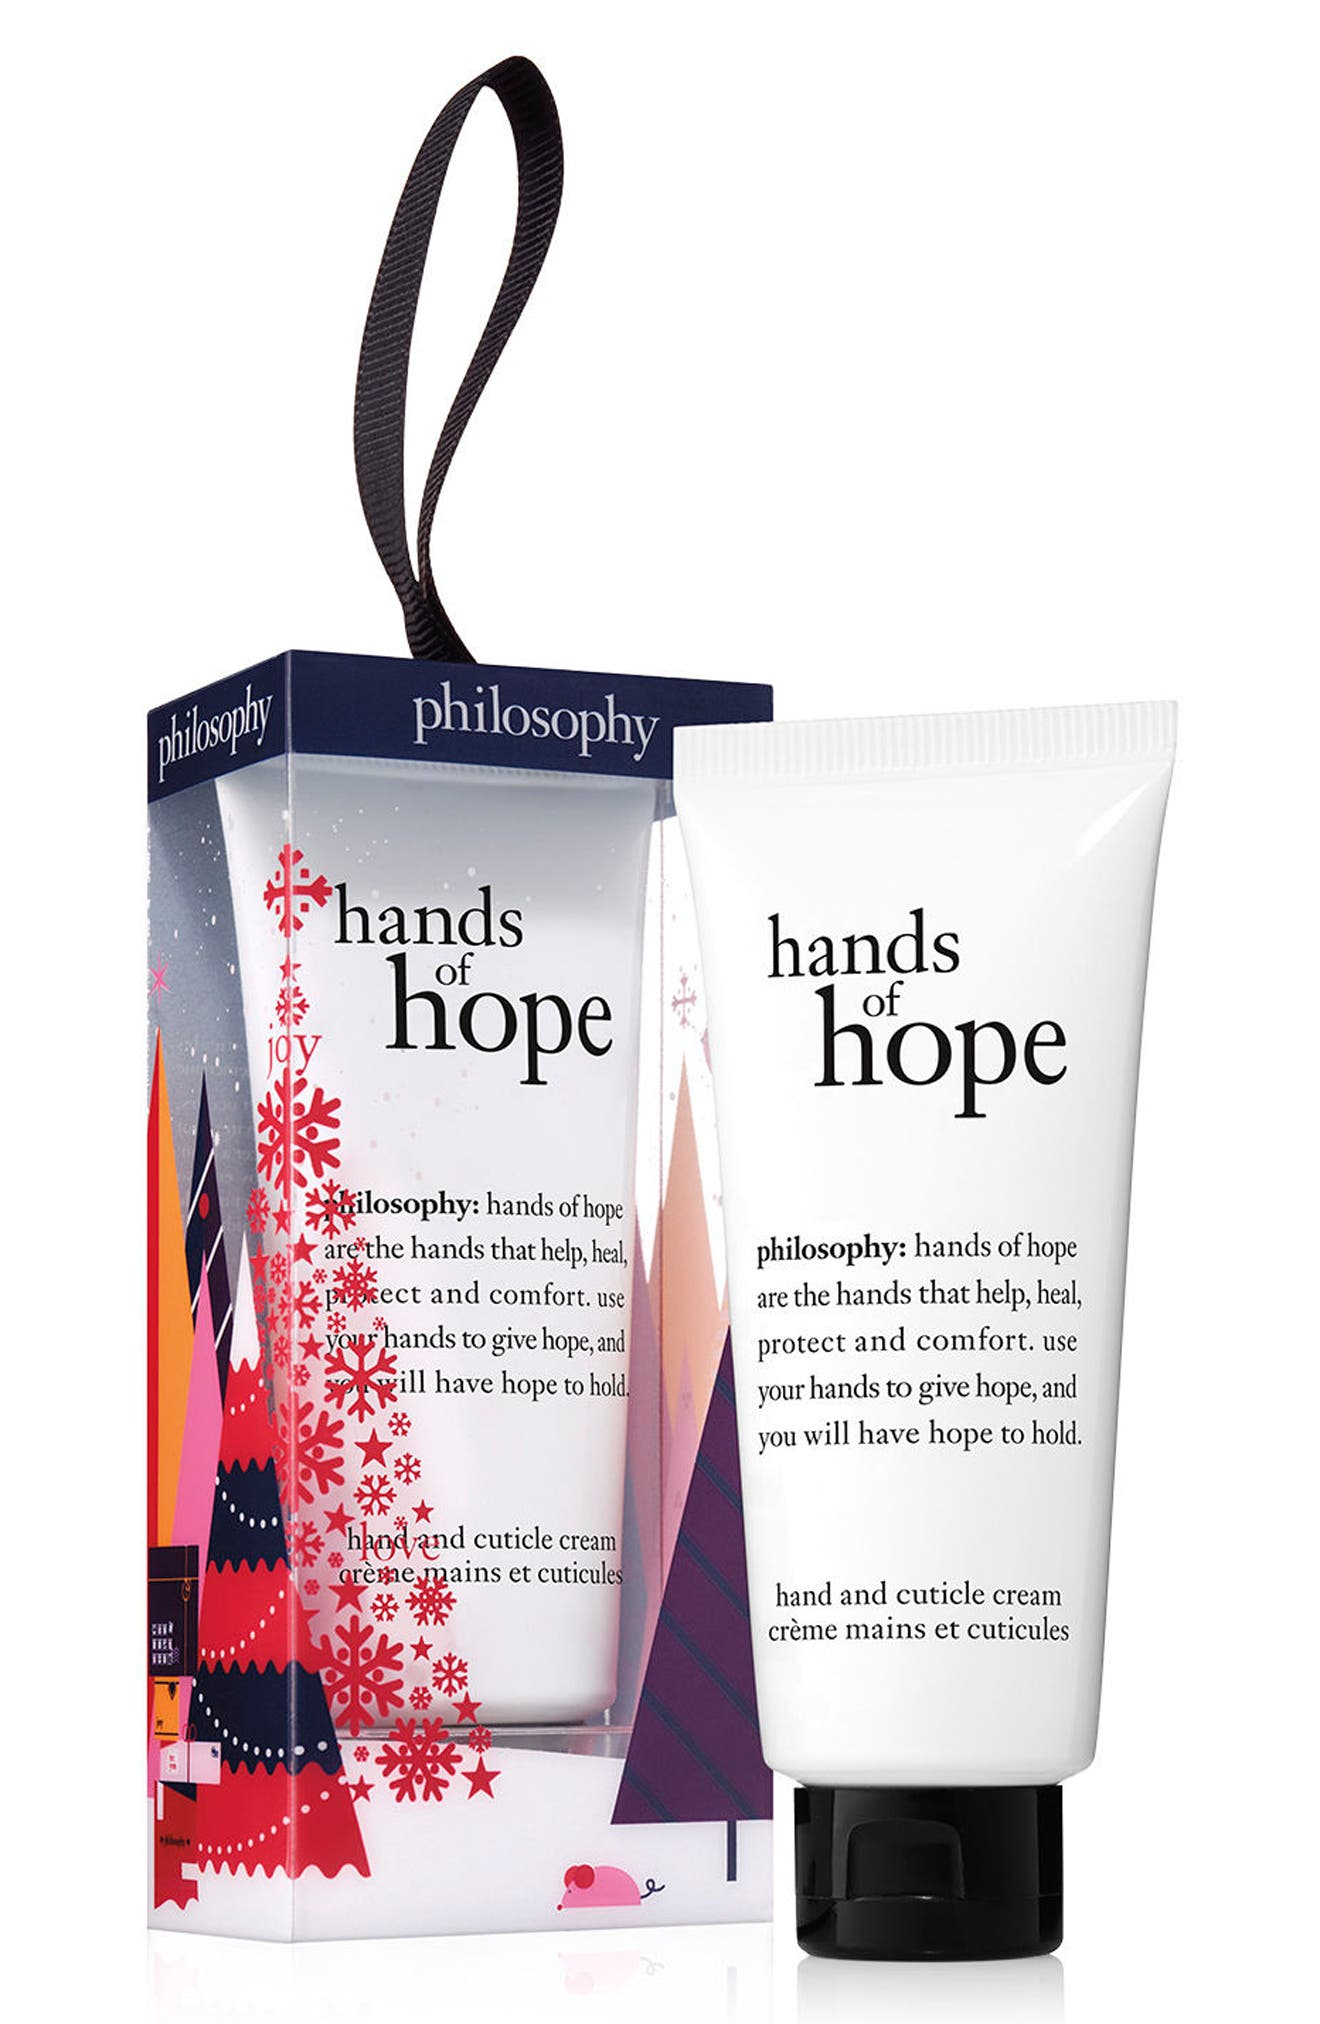 philosophy hands of hope hand & cuticle cream ornament (Limited Edition)